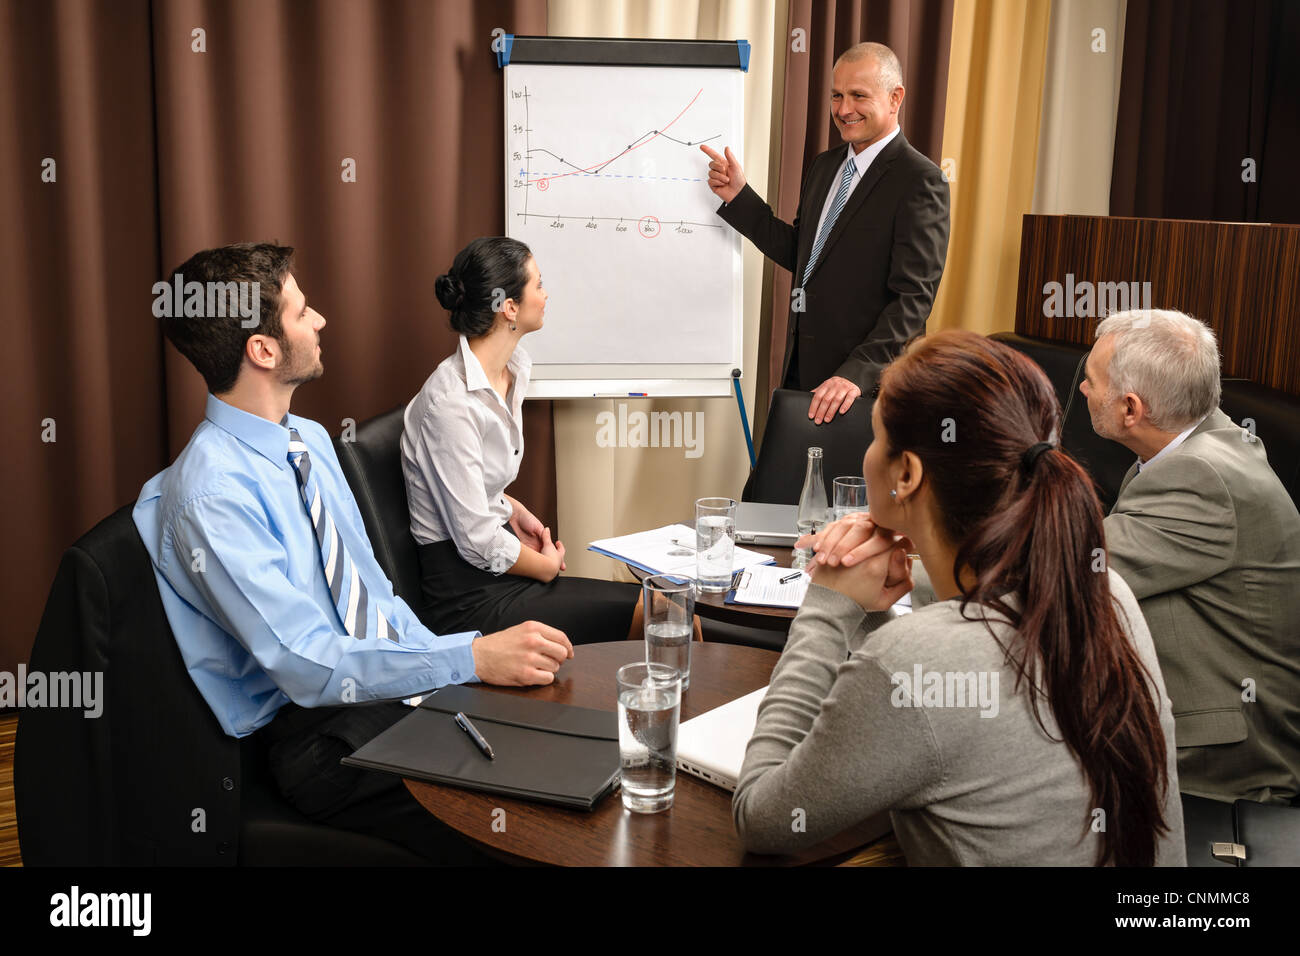 Executive businessman giving presentation on flip-chart to team formalwear - Stock Image